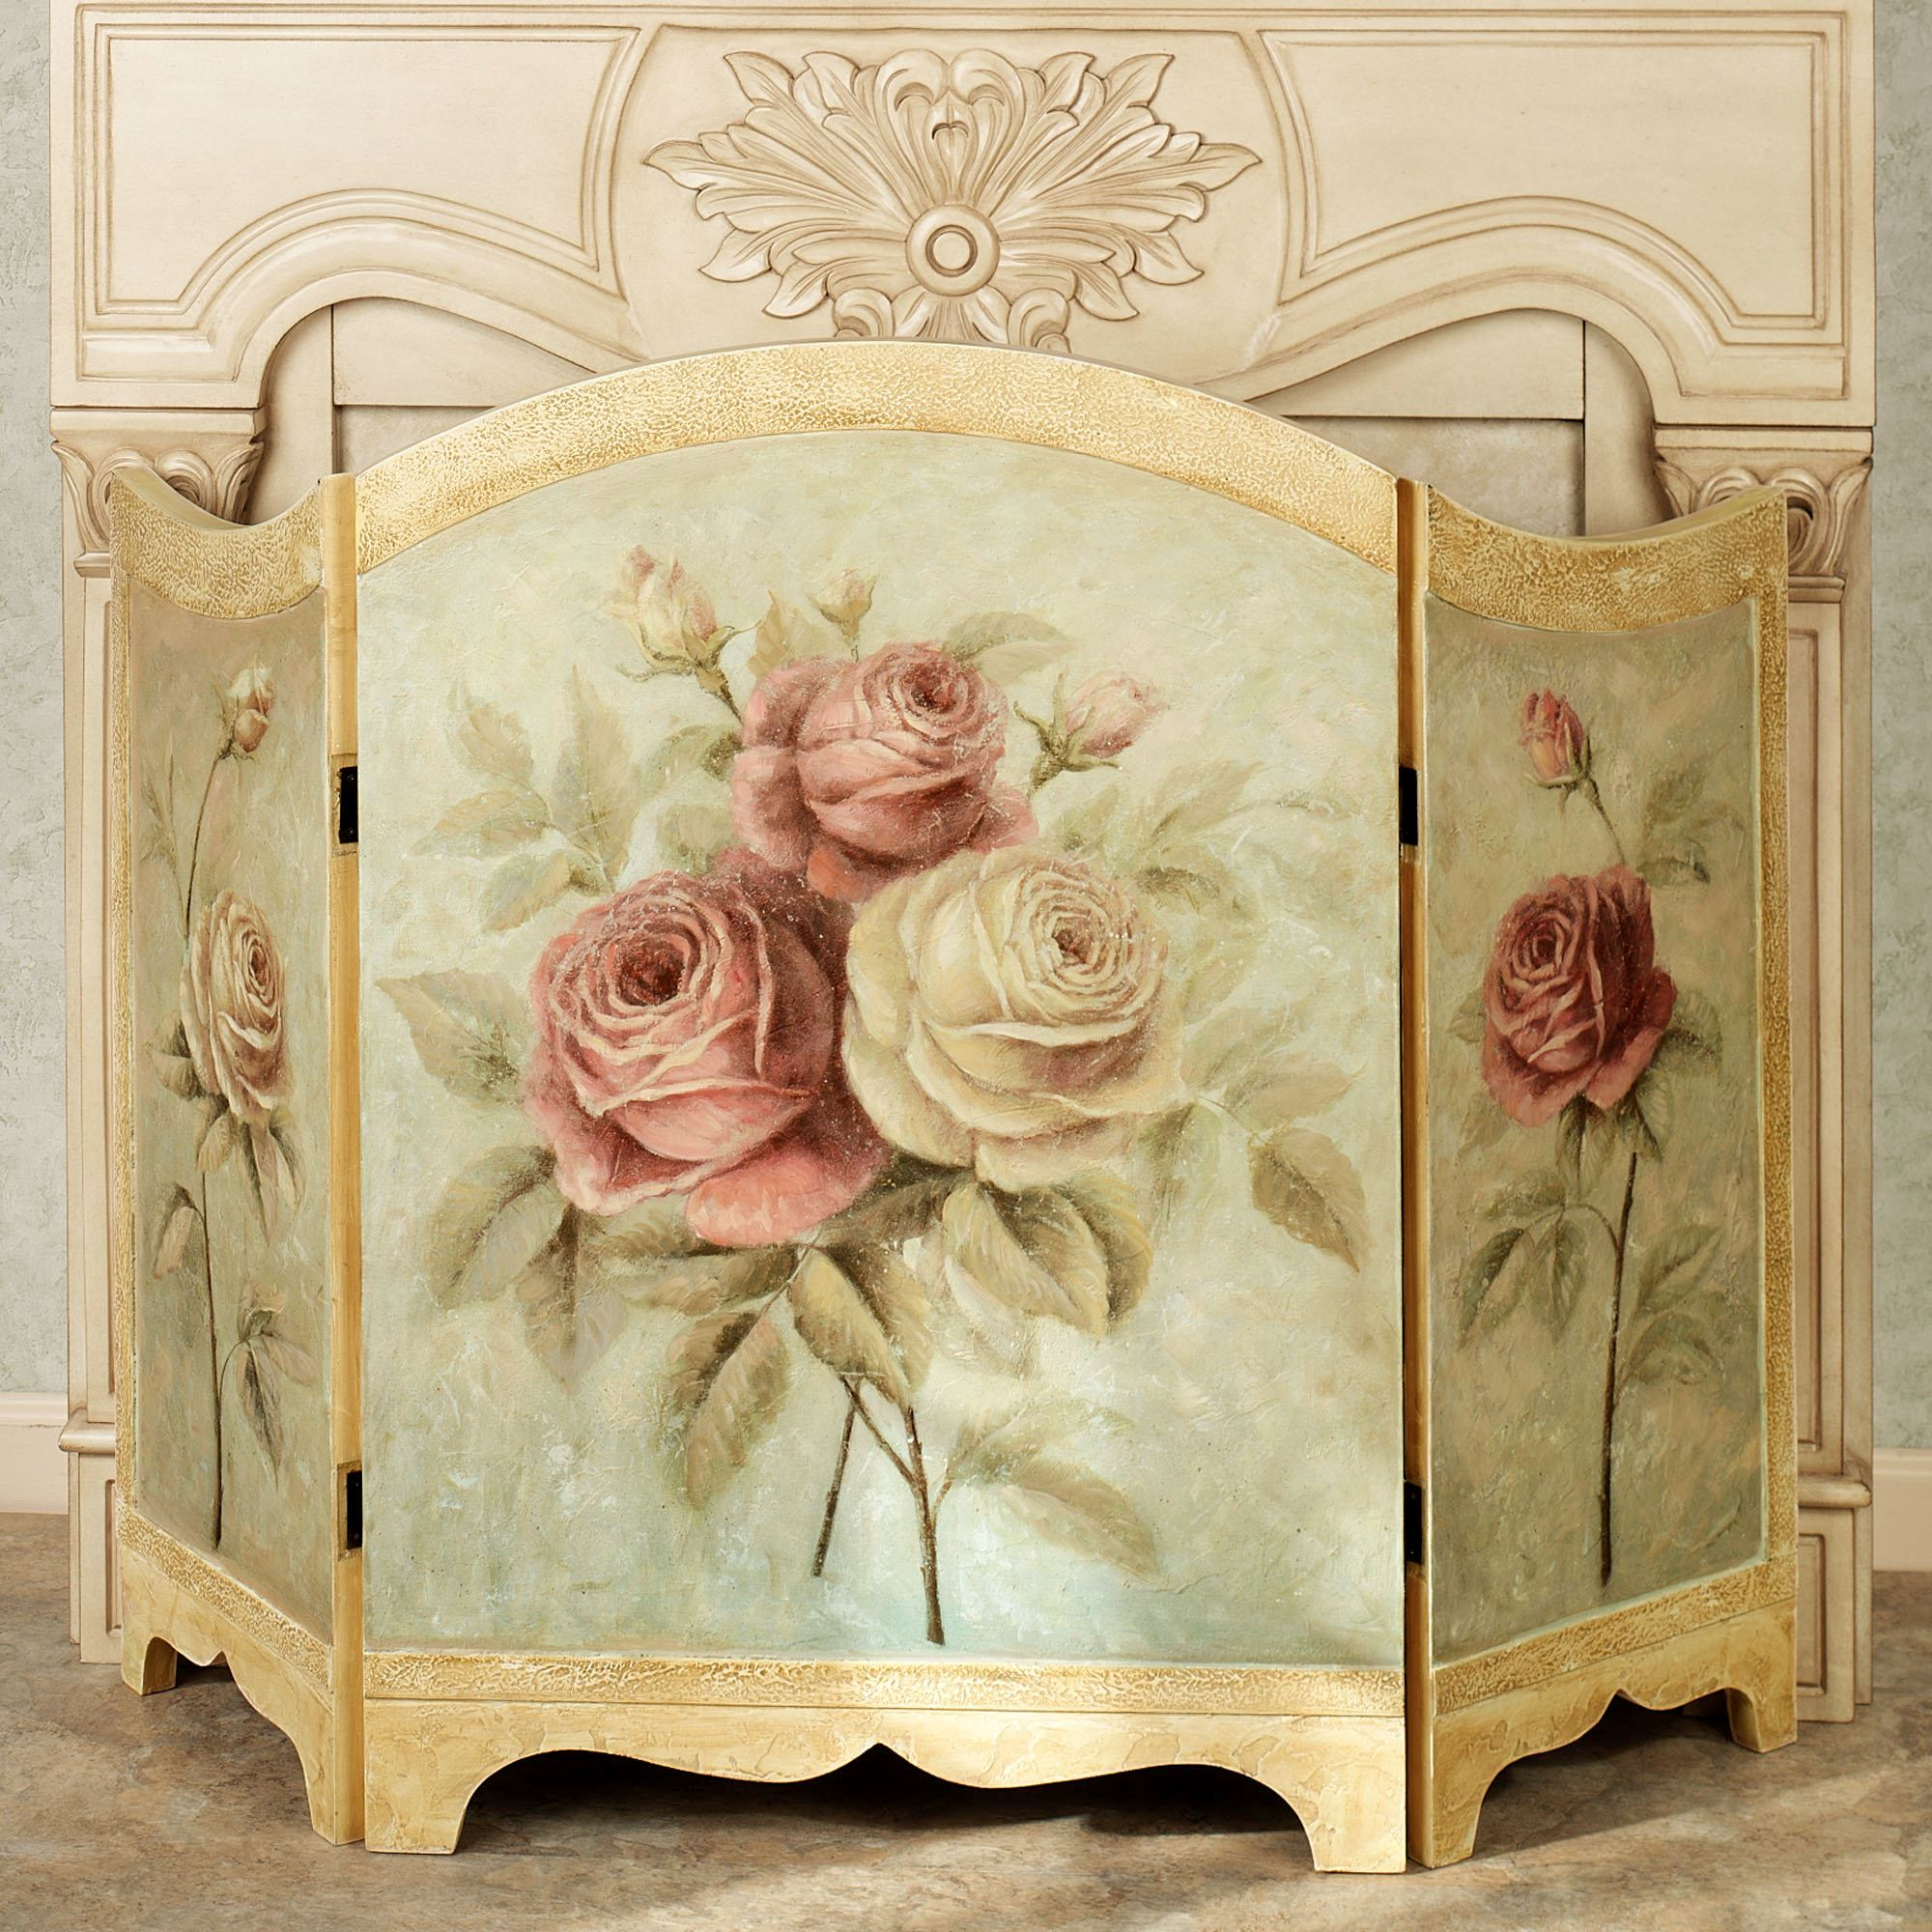 Rose Delight Decorative Fireplace Screen